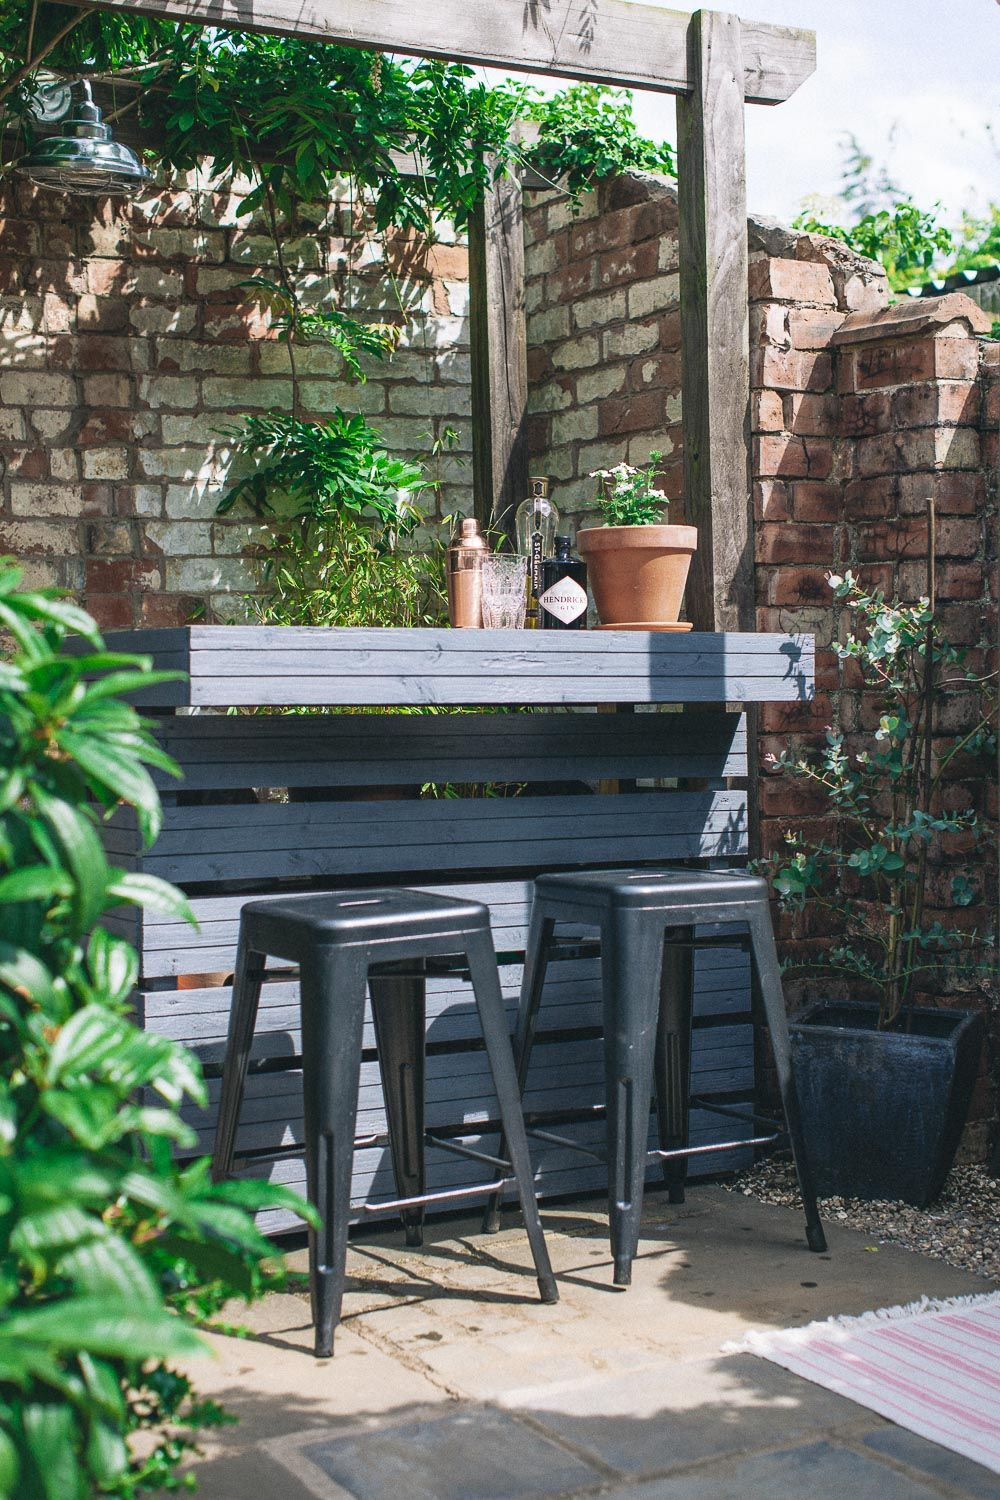 Outdoor Garden Bar Made From Decking Boards With Industrial Style Stools  And Wooden Pergola